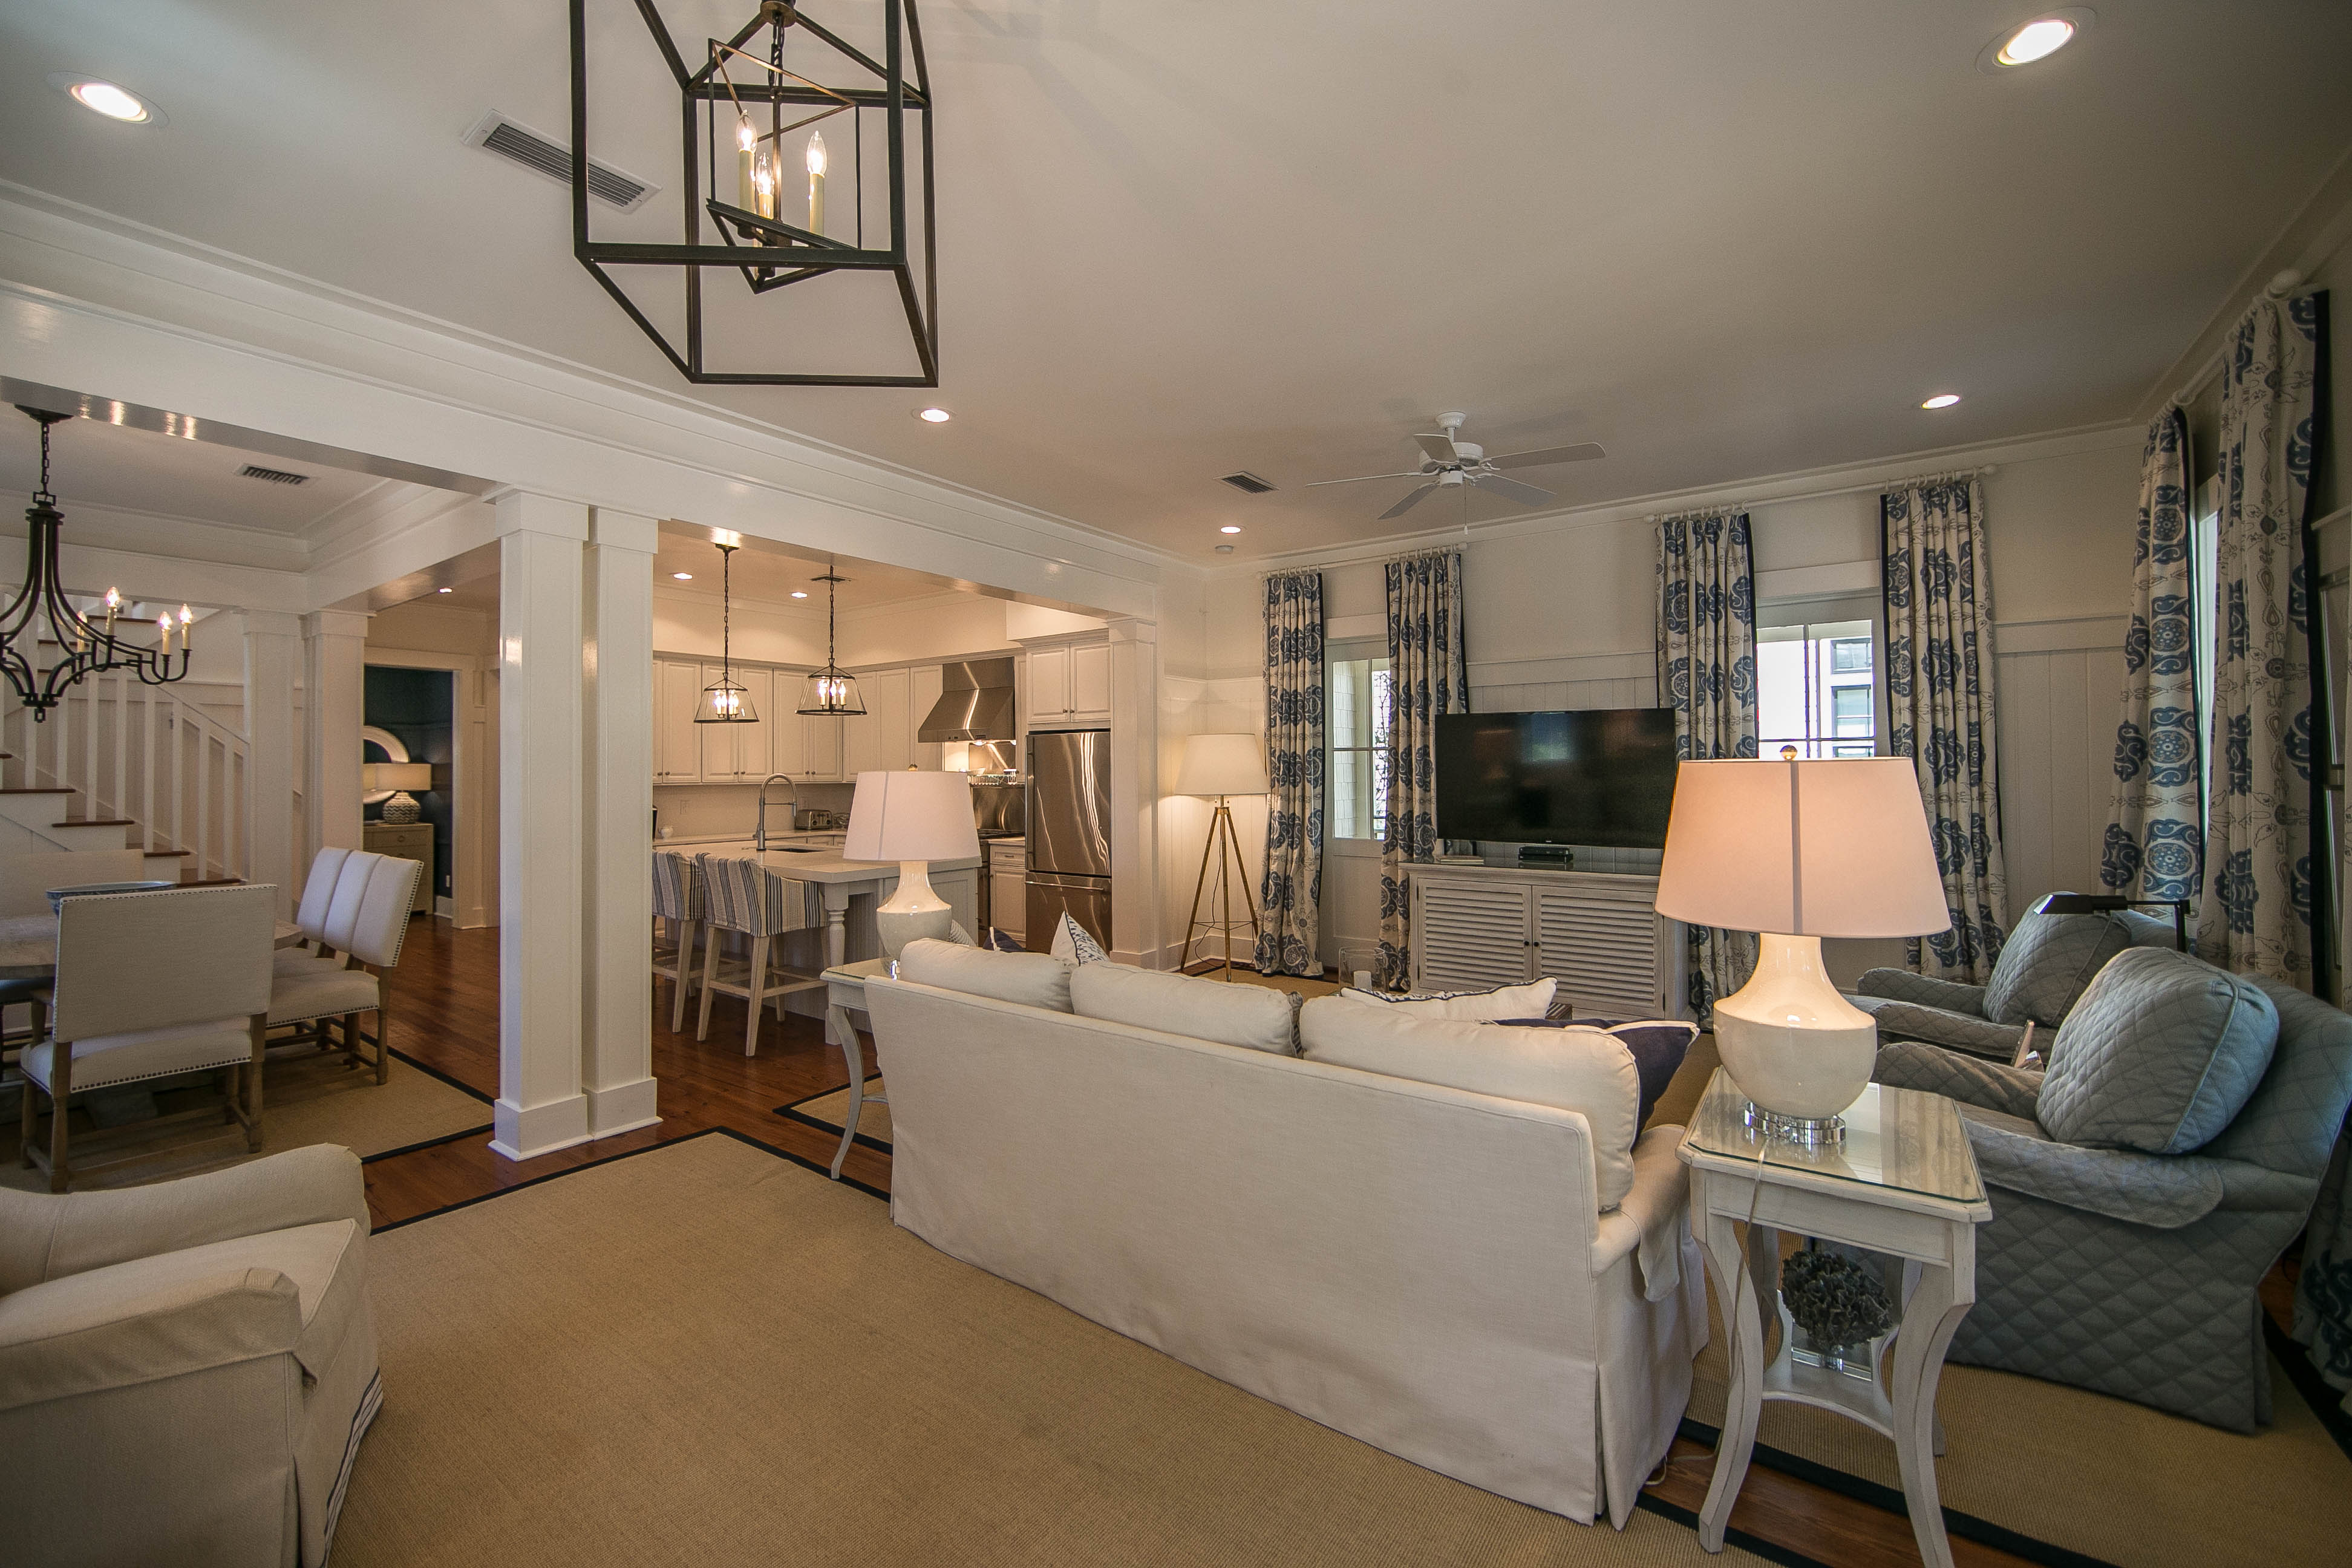 Wonderful, open concept living space